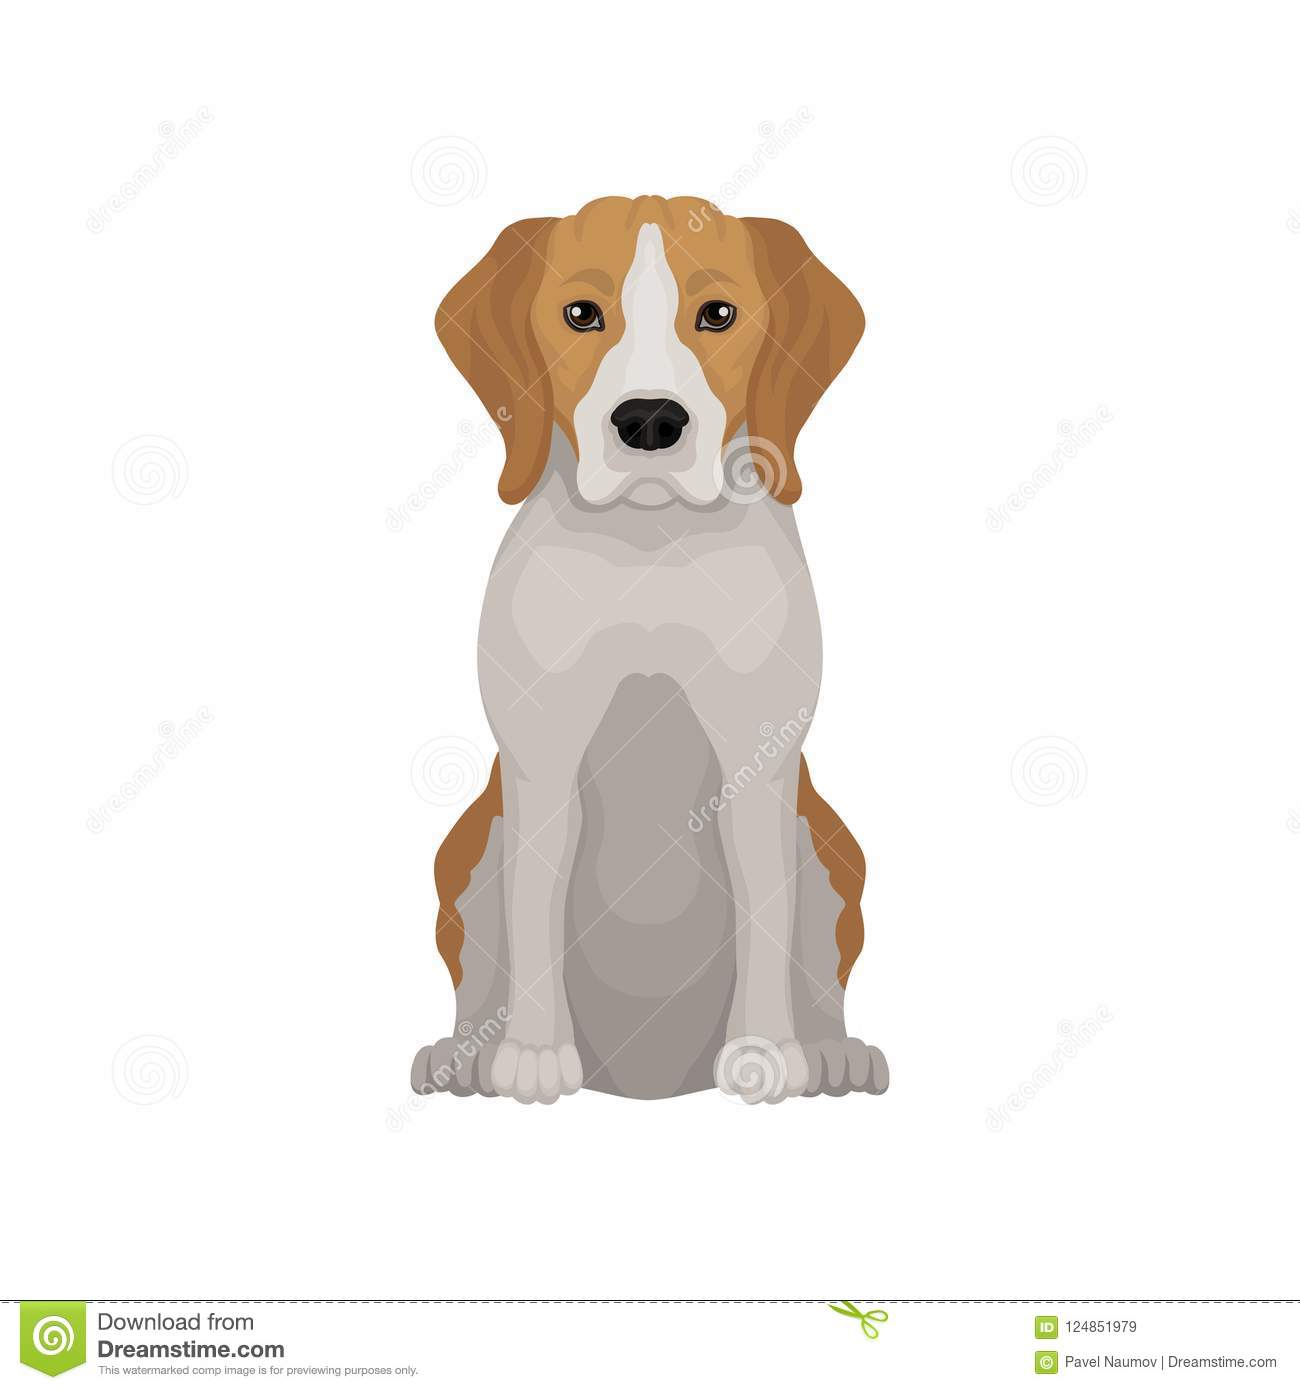 Lovely beagle in sitting position. Small hunting dog. Short-haired puppy with long ears and cute muzzle. Flat vector